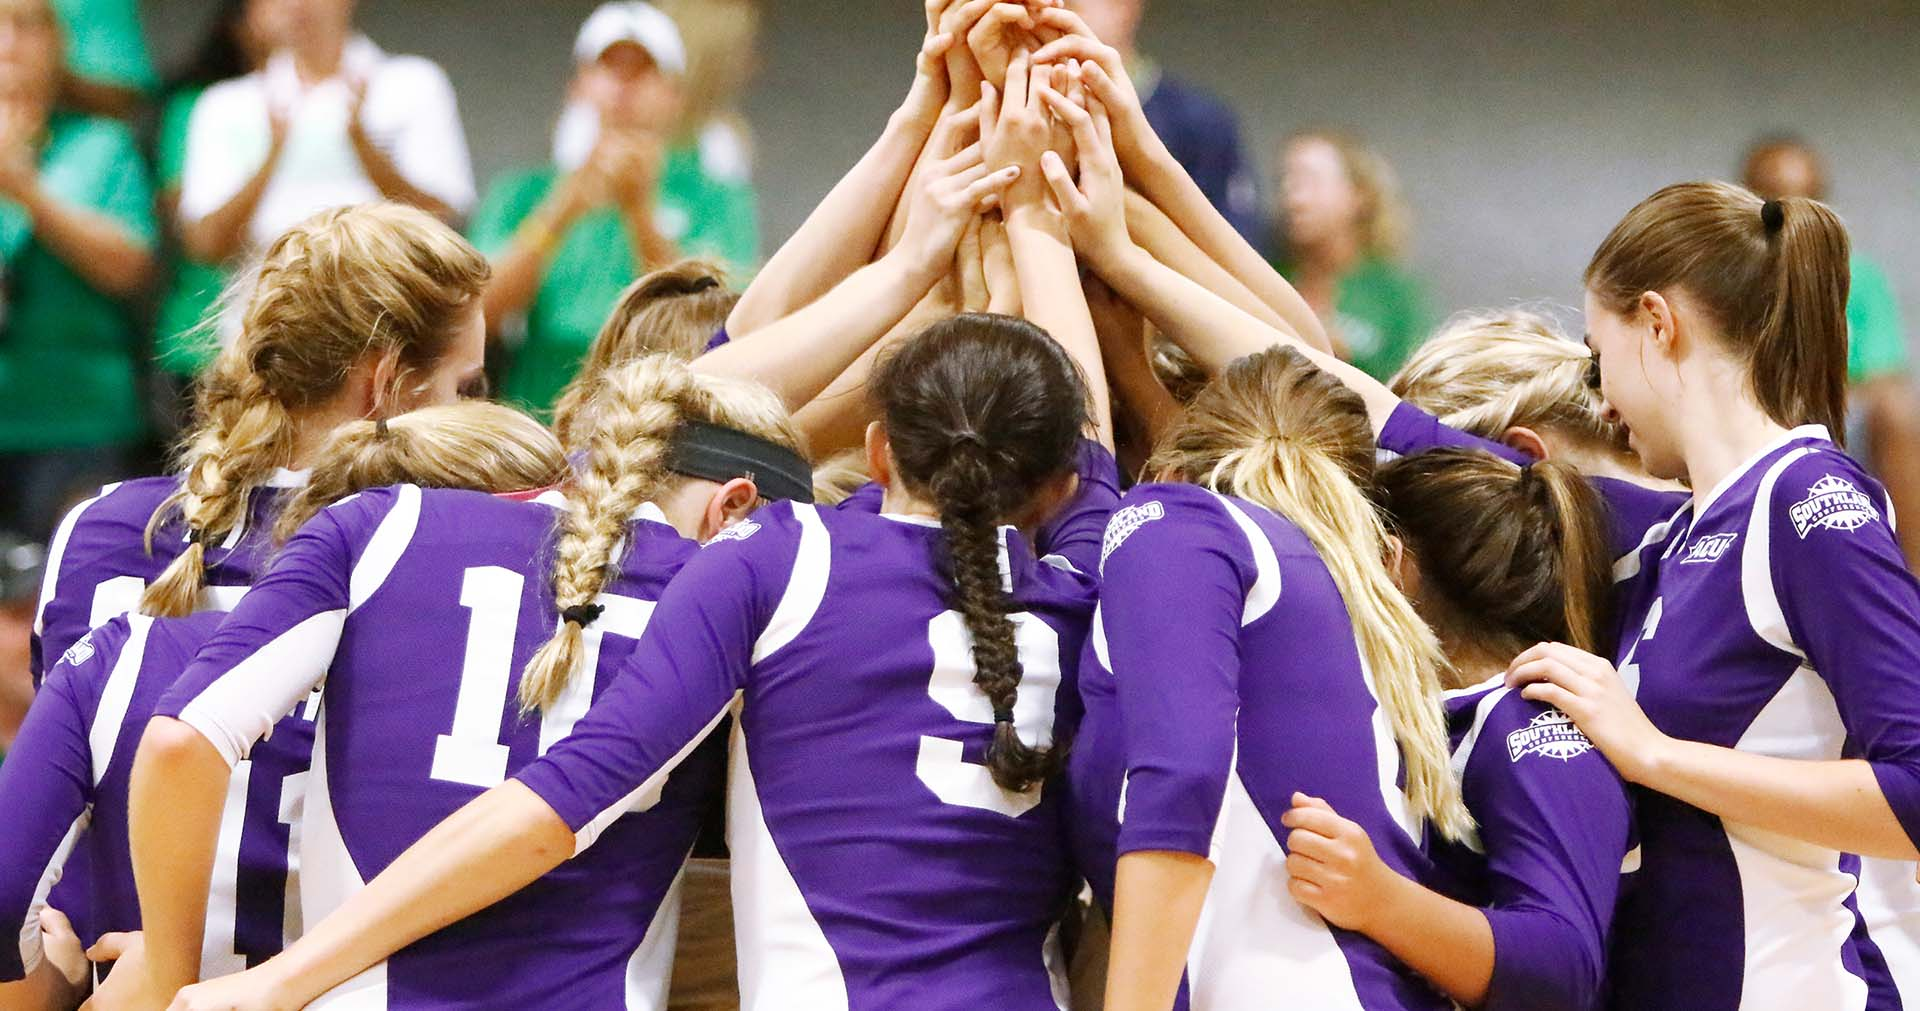 ACU women's volleyball players in a huddle